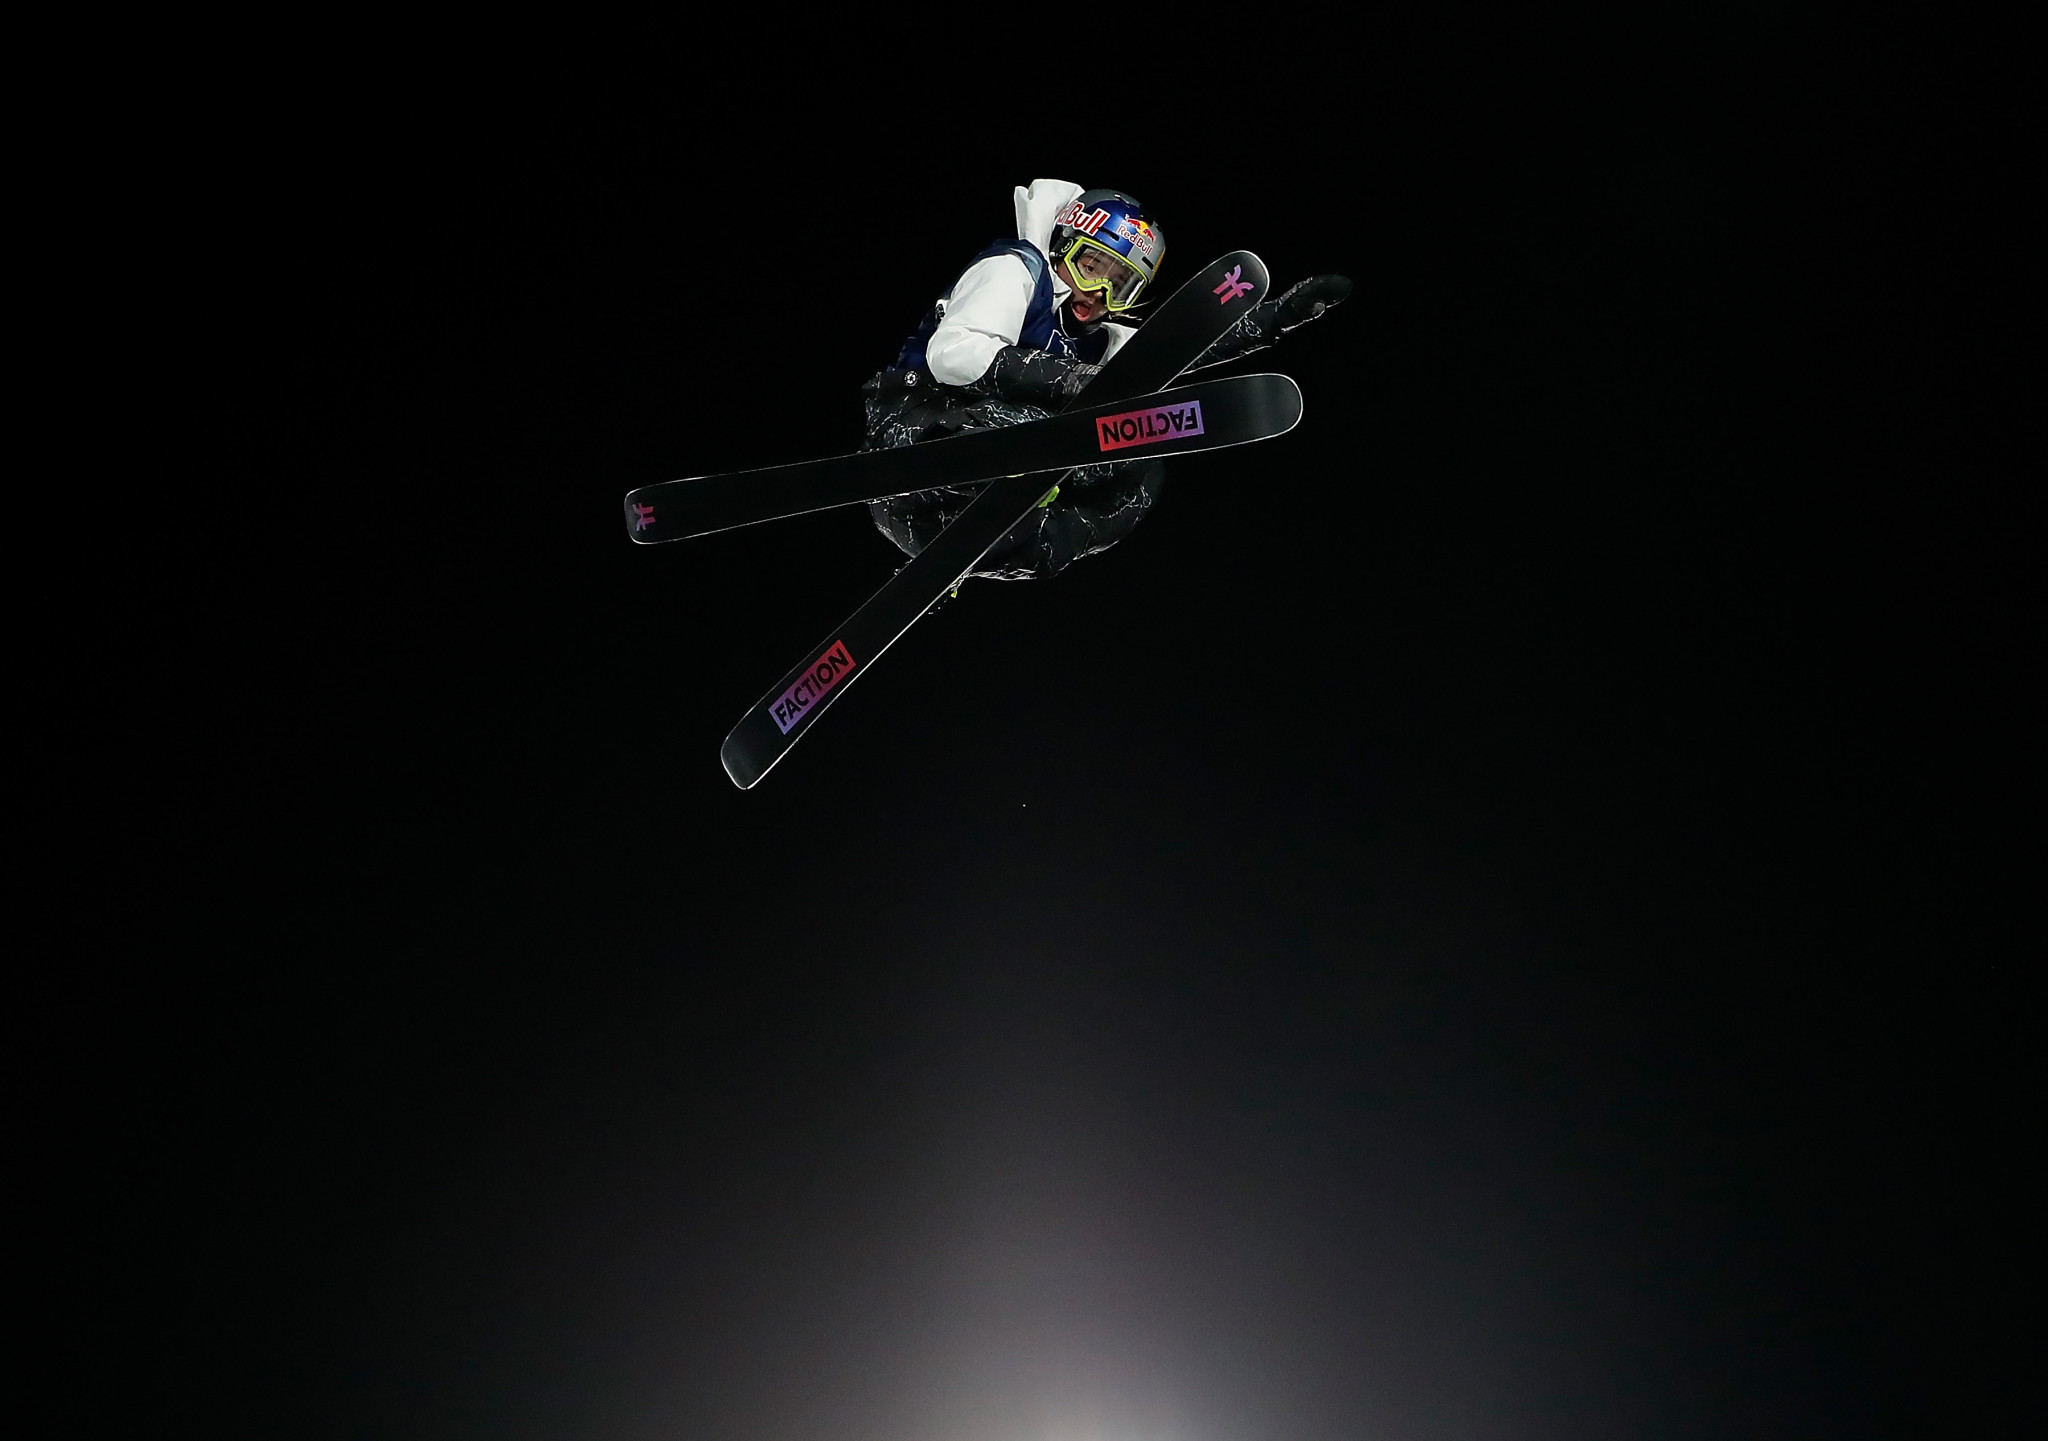 Gremaud recovers from crash to win FIS Freestyle Ski World Cup in Atlanta